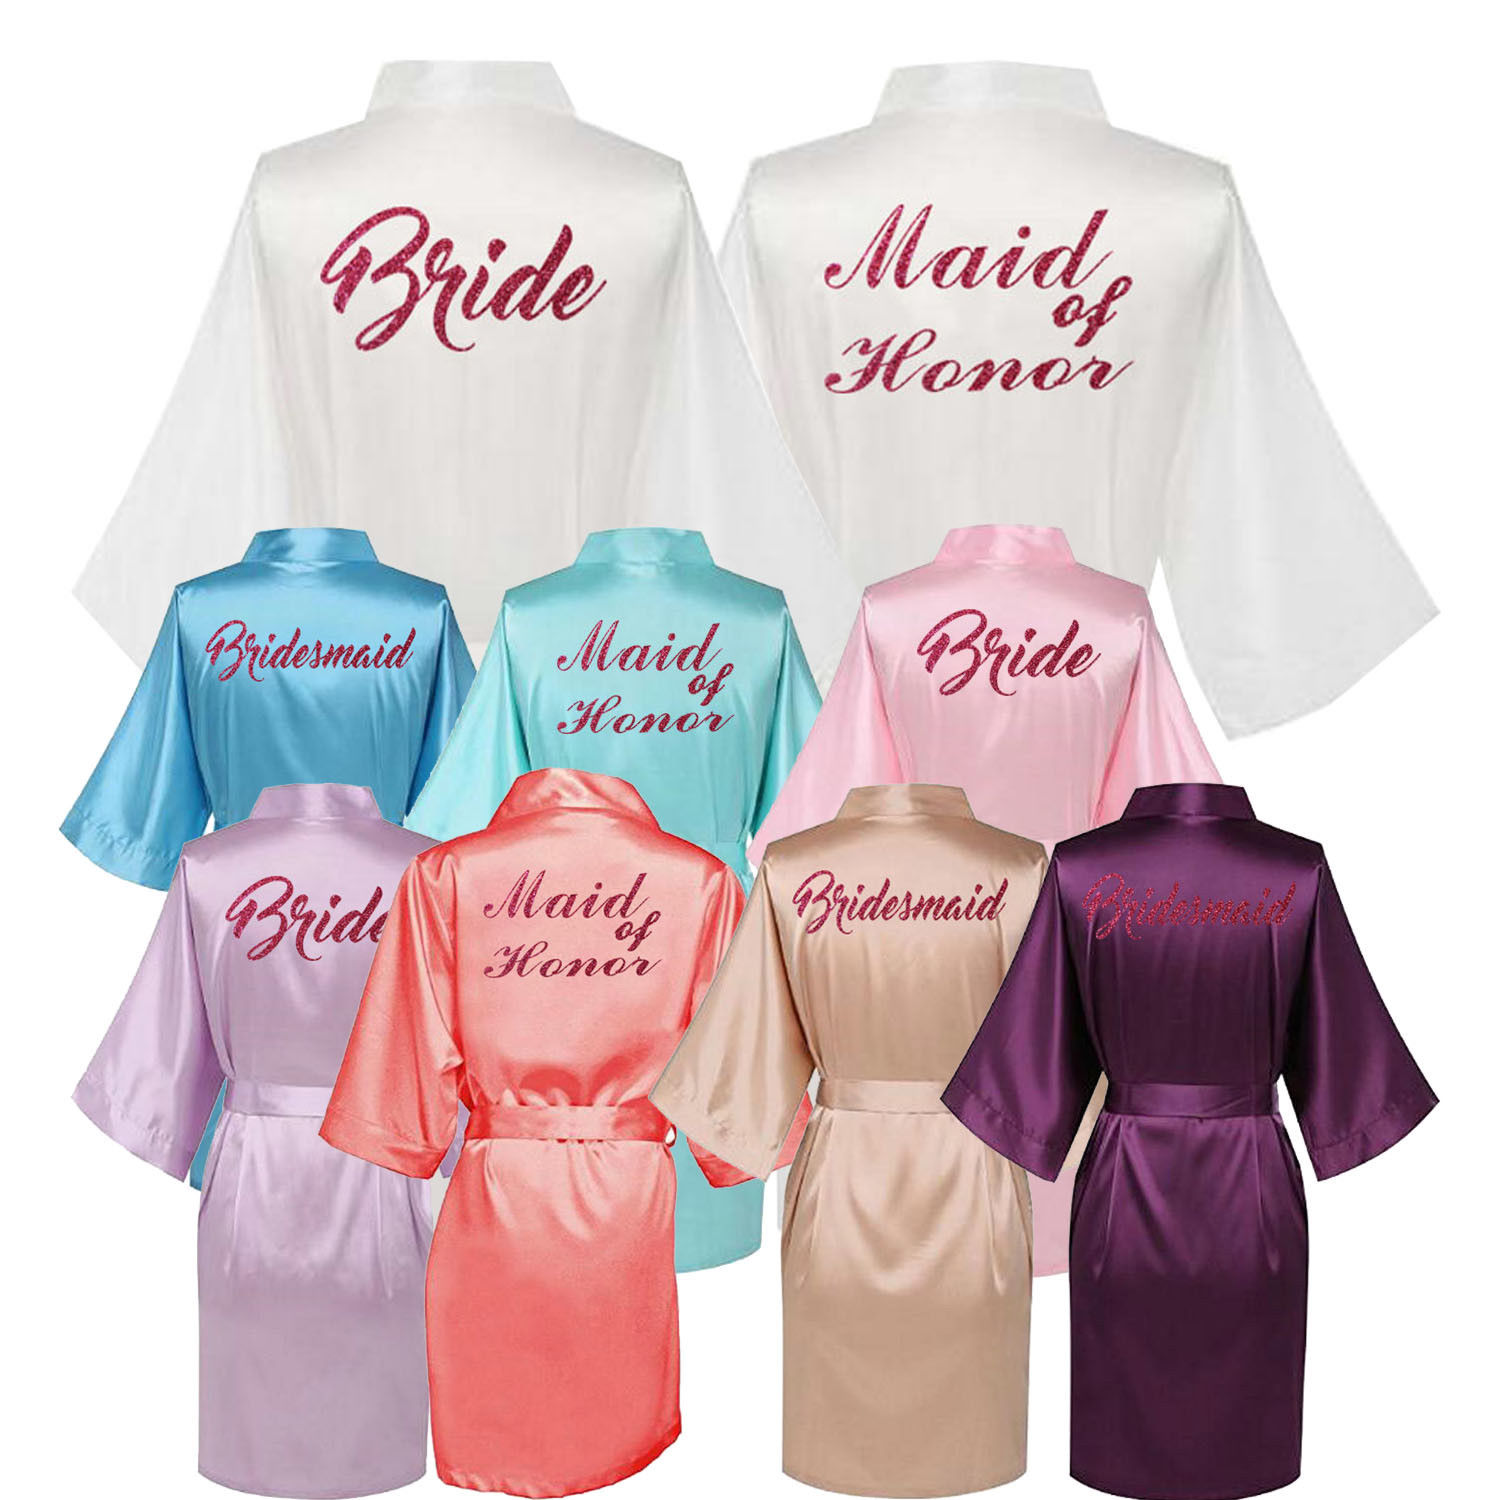 2019 Hot Women Summer Sexy Satin Silk Robes Gown Wedding Bride Kimono Lingerie Bridesmaid Bridal Silk Robes for Women Dress New in Robes from Underwear Sleepwears